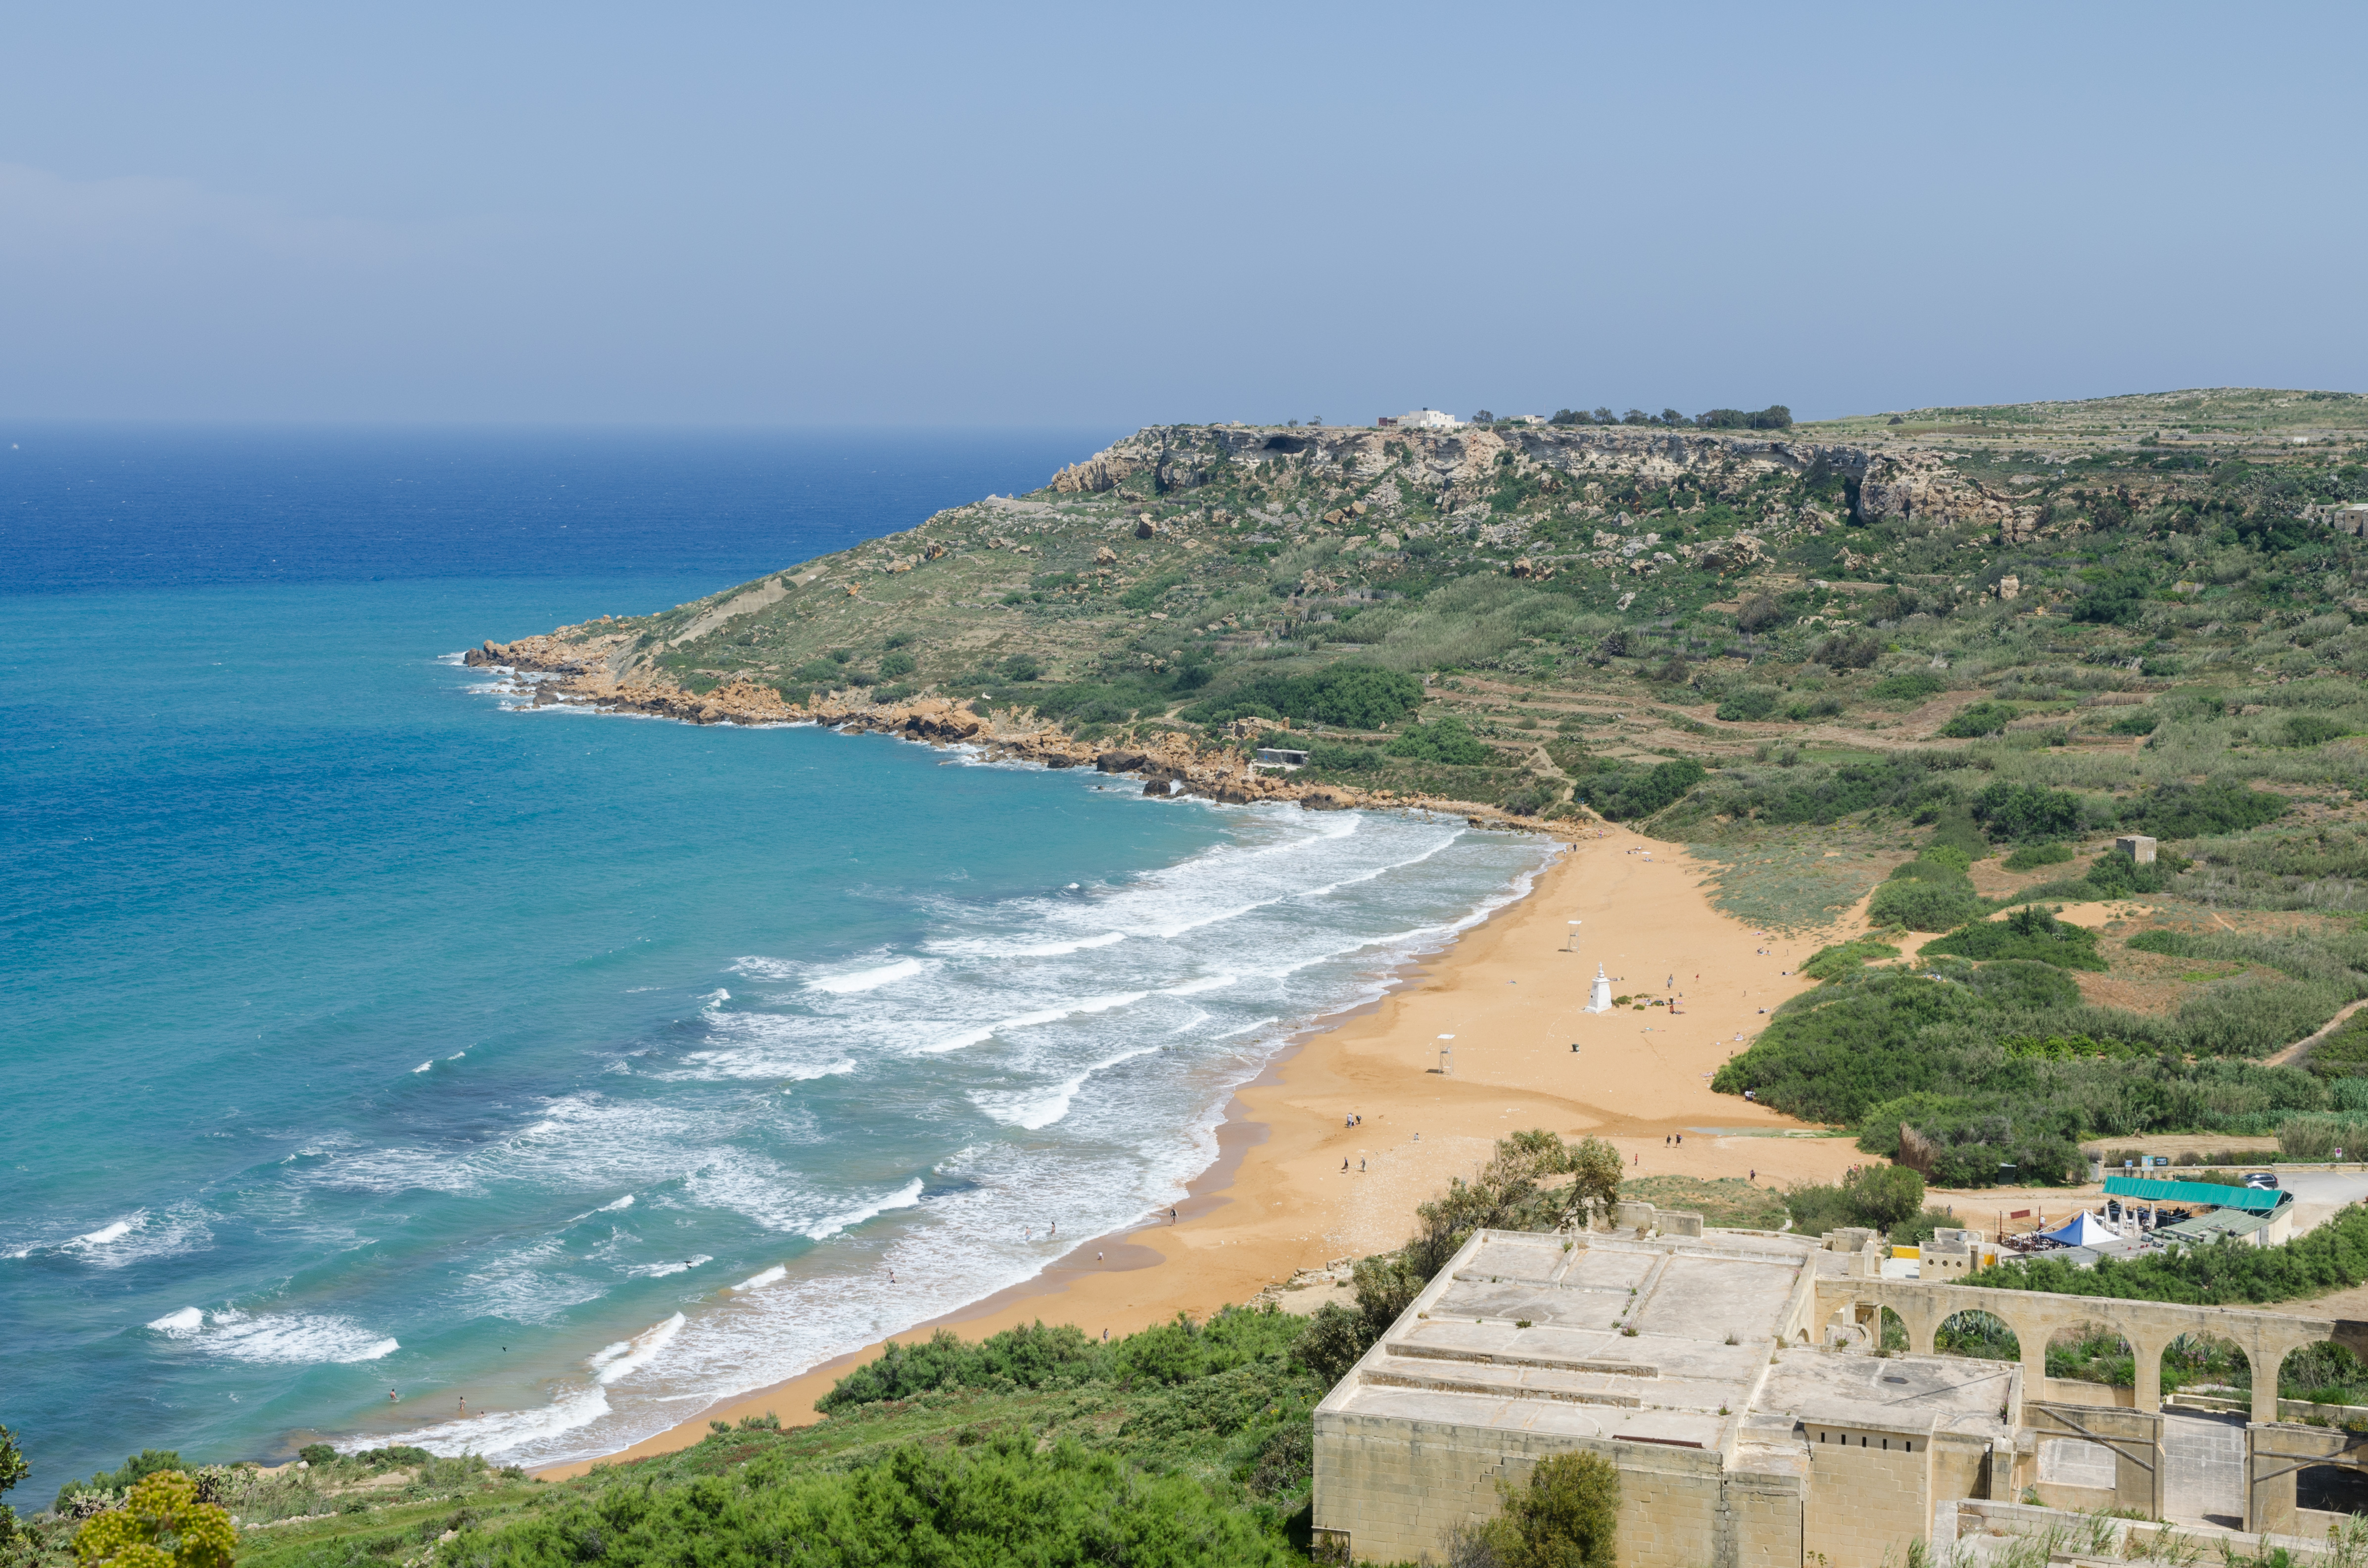 West view of Ramla Bay, Gozo